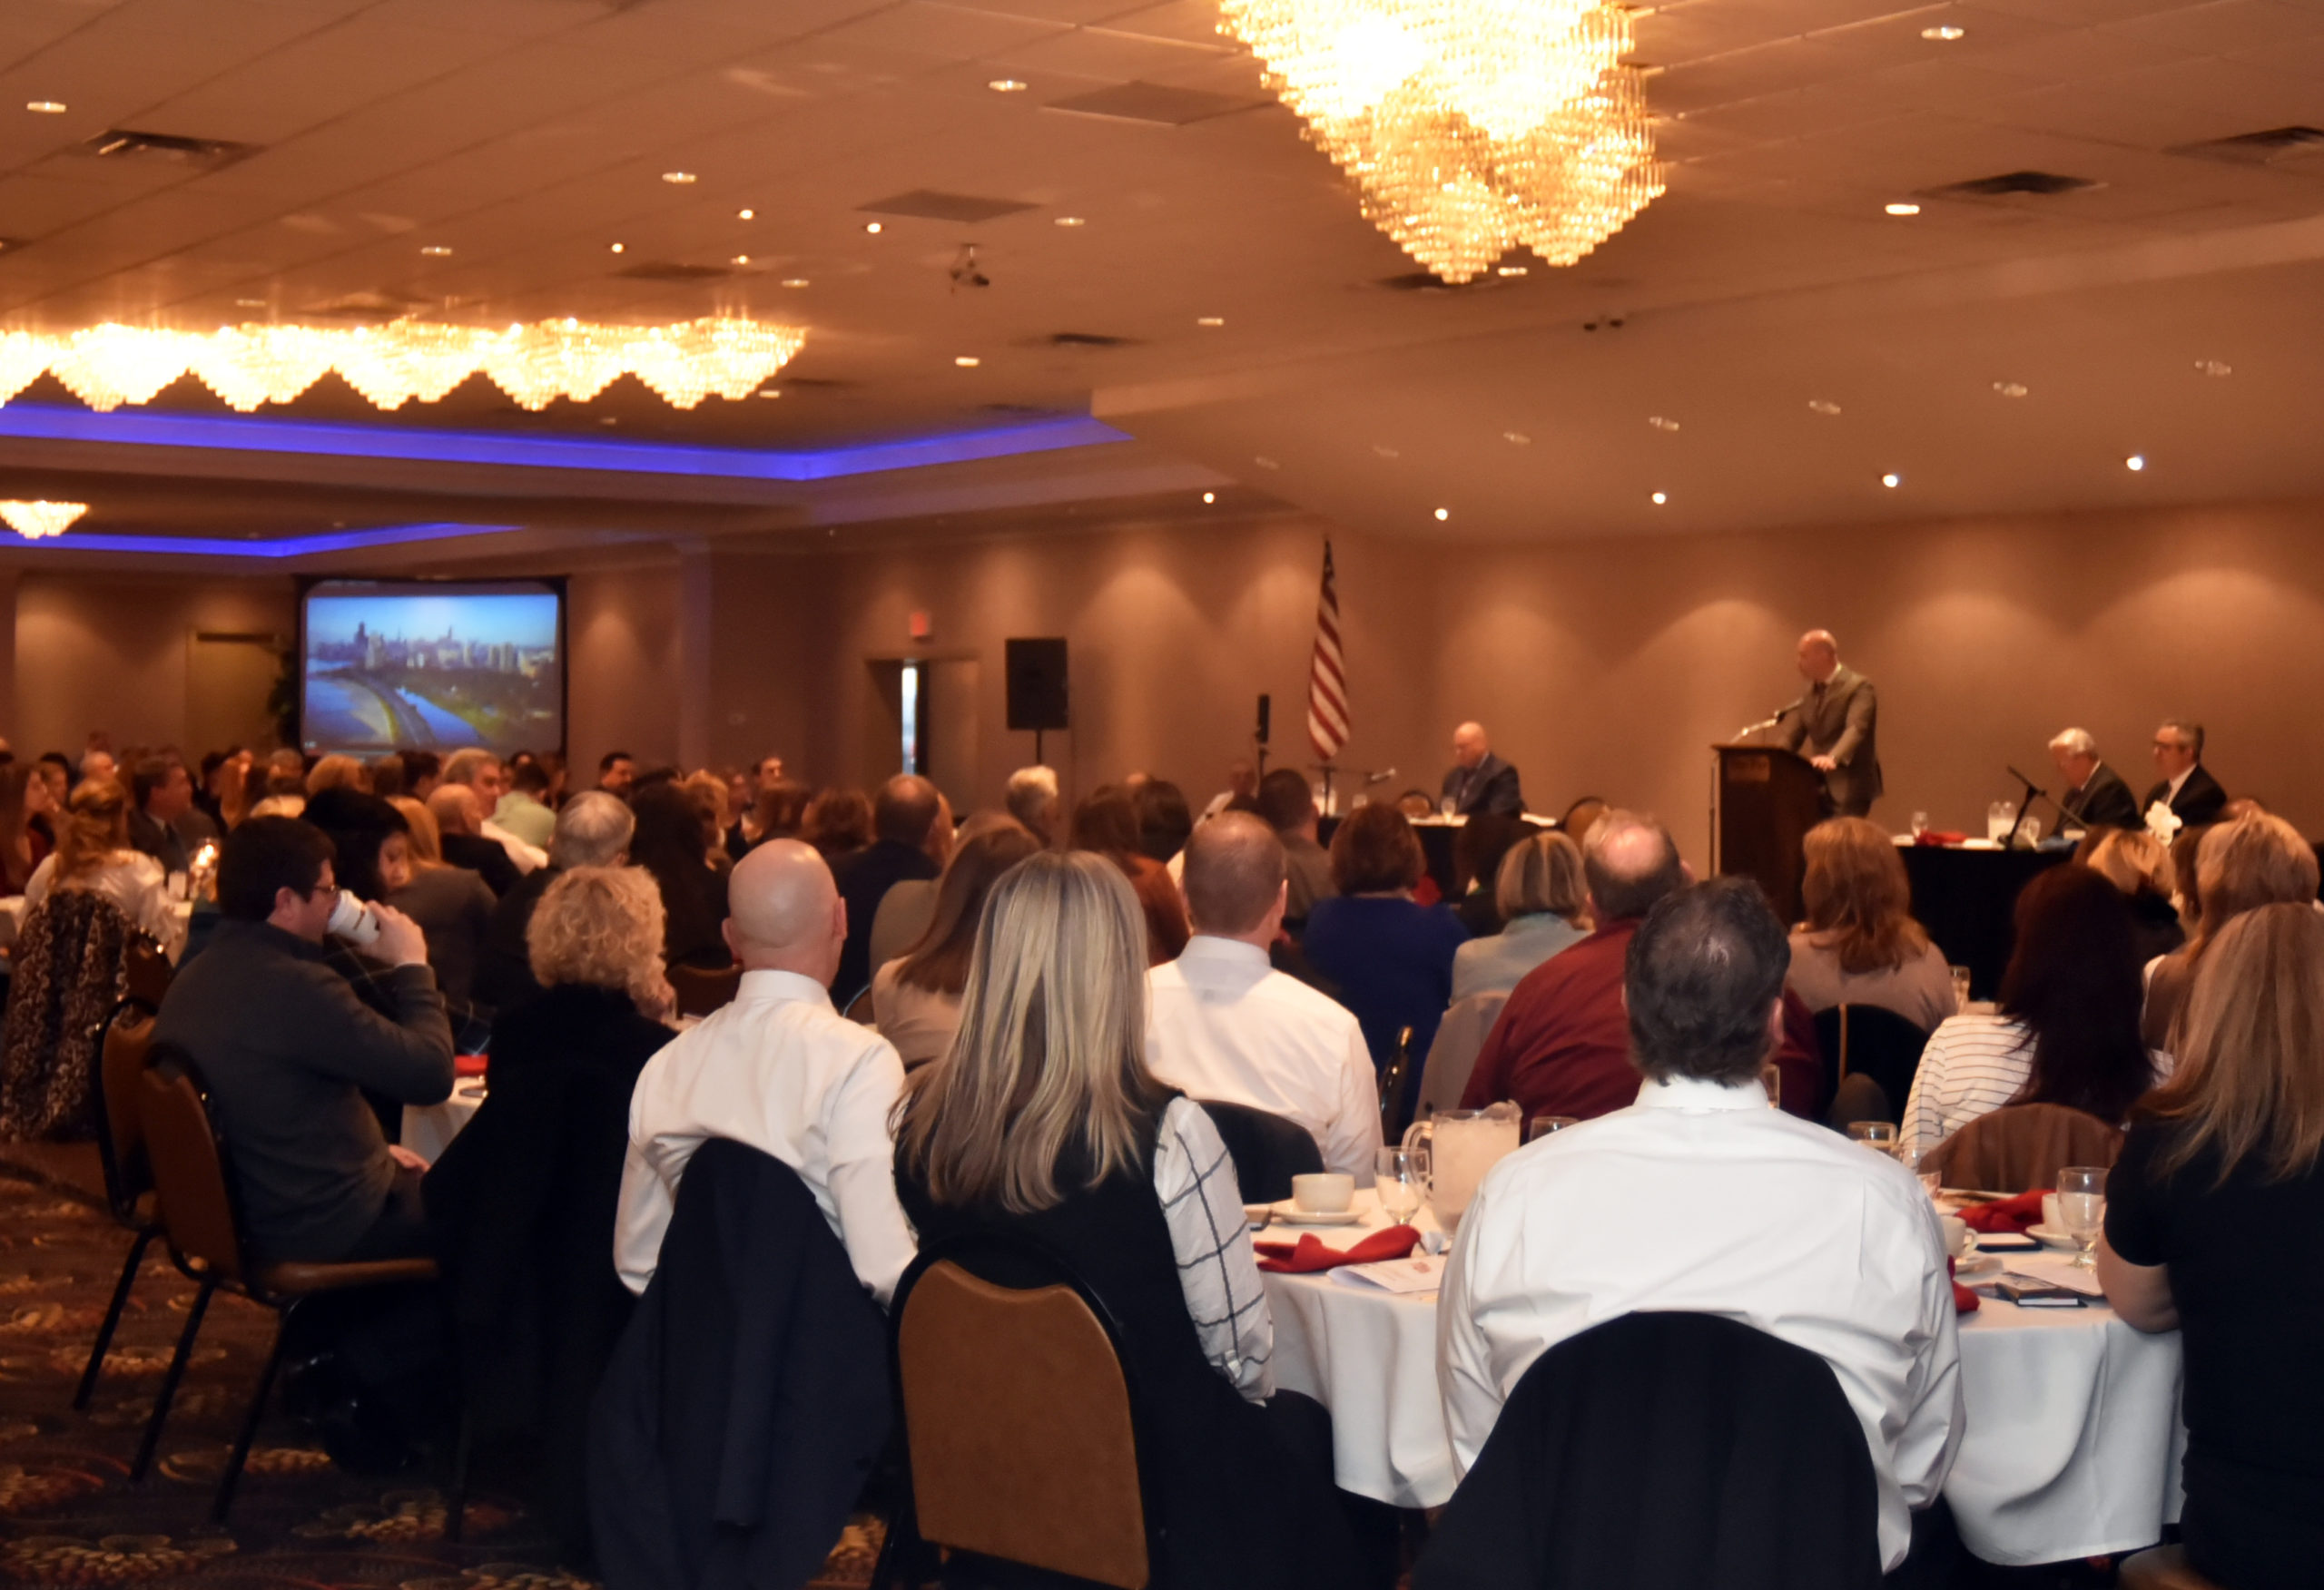 State of the County annual meeting held at The Fez, 200+ in attendance.